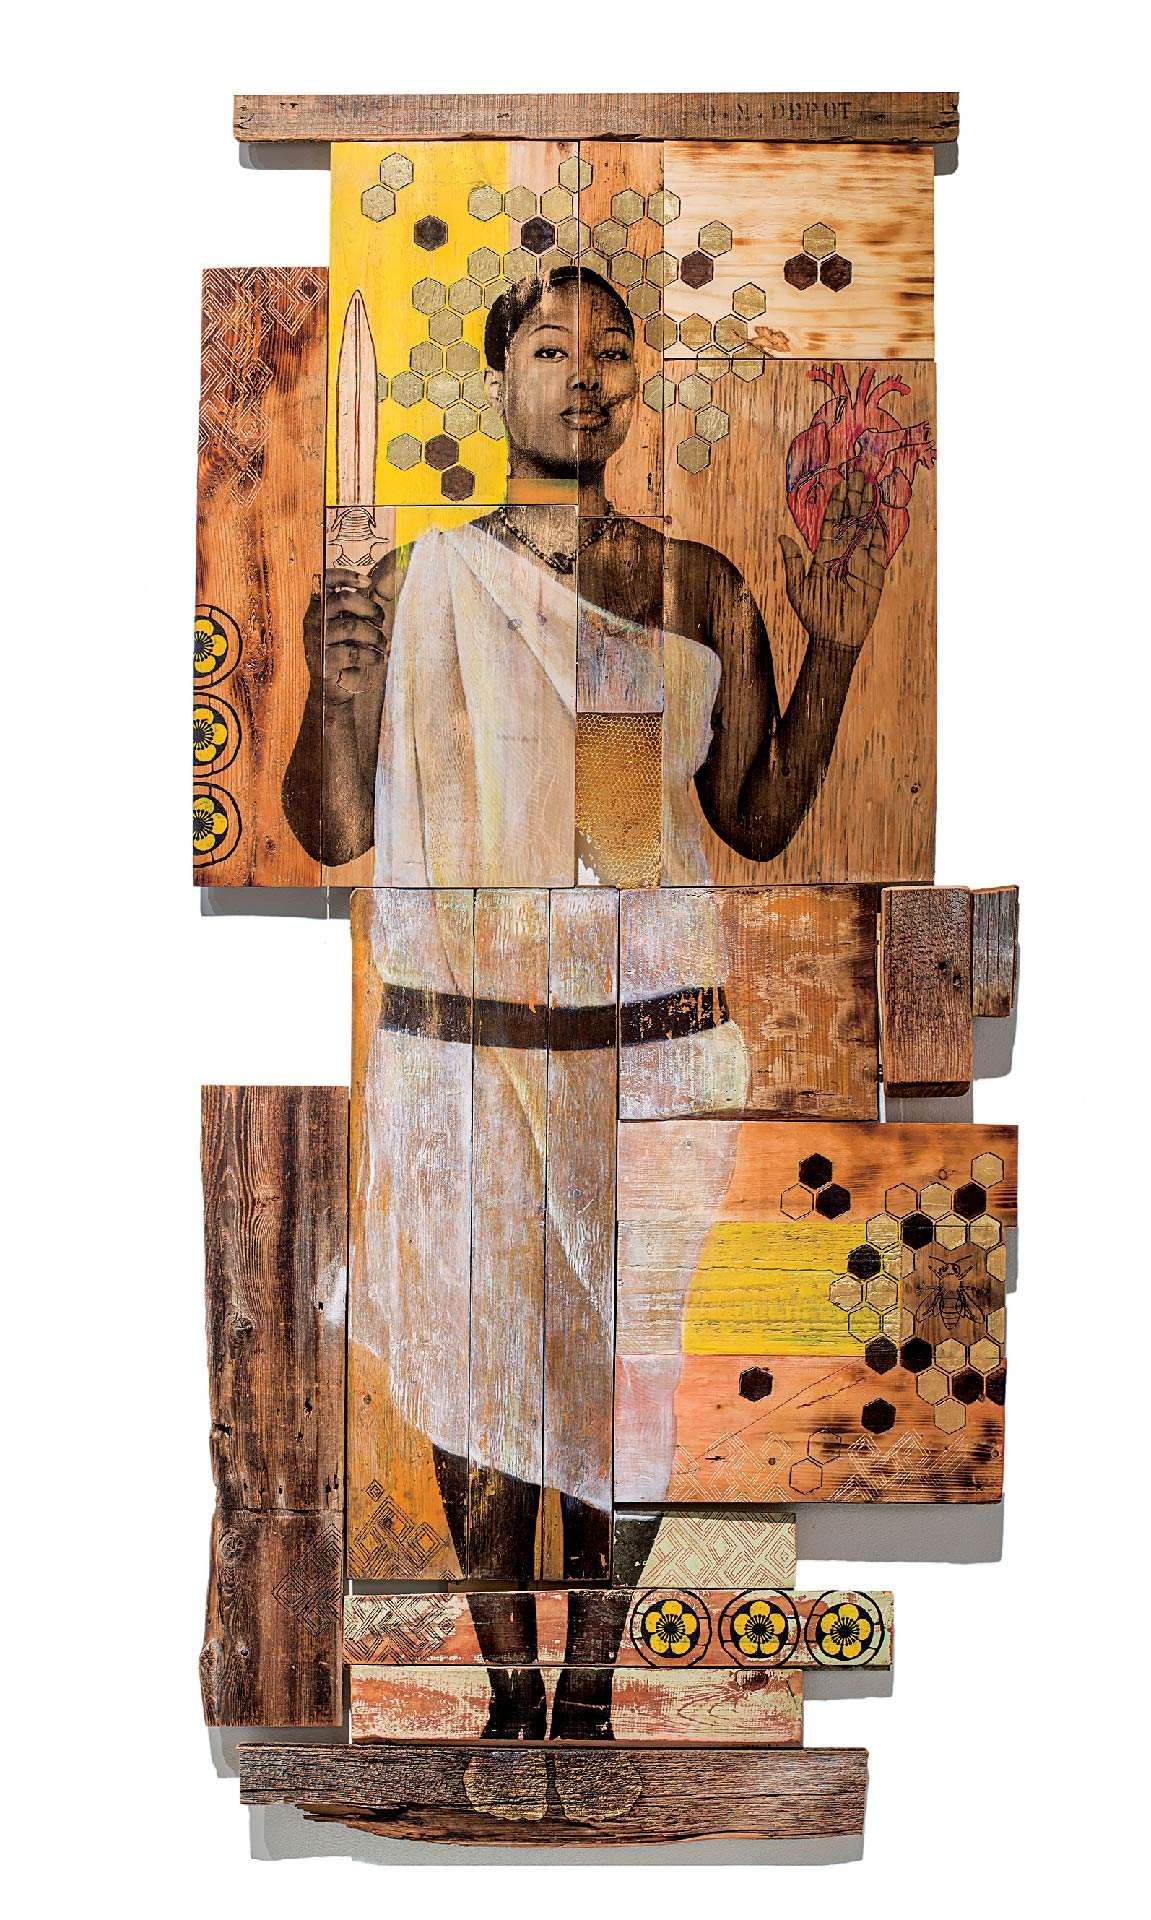 Shanna Strauss, Memory Keepers, 2017, photo transfer, acrylic, wood-burning and carving on recycled wood. Collection of the artist.